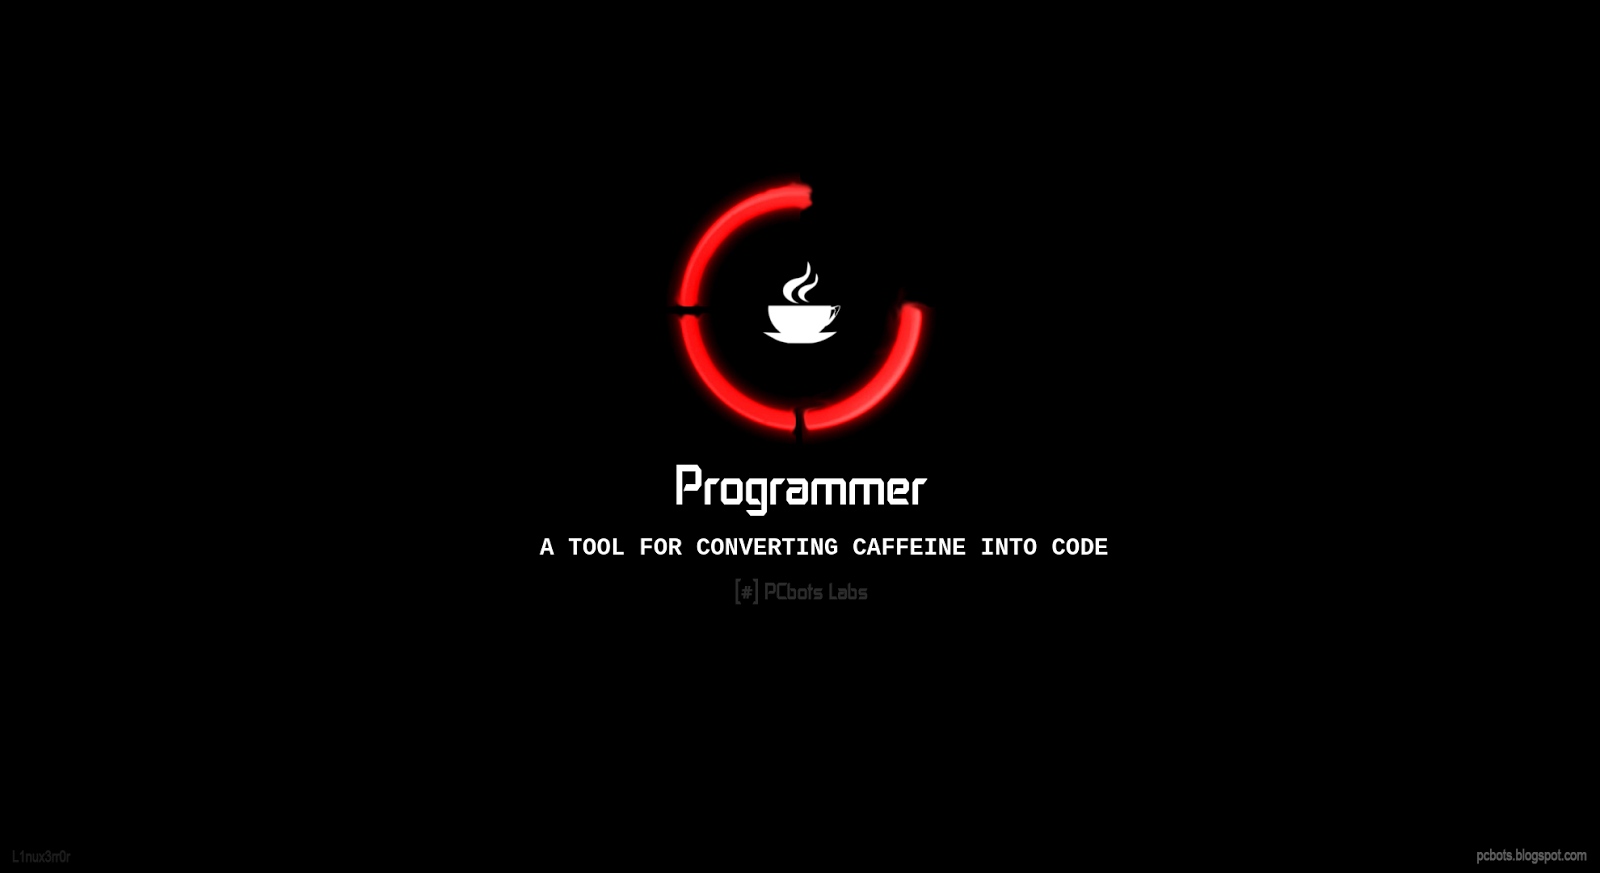 Caffeine Loading Please Wait   Programmer HD Wallpaper by PCbots 1600x873